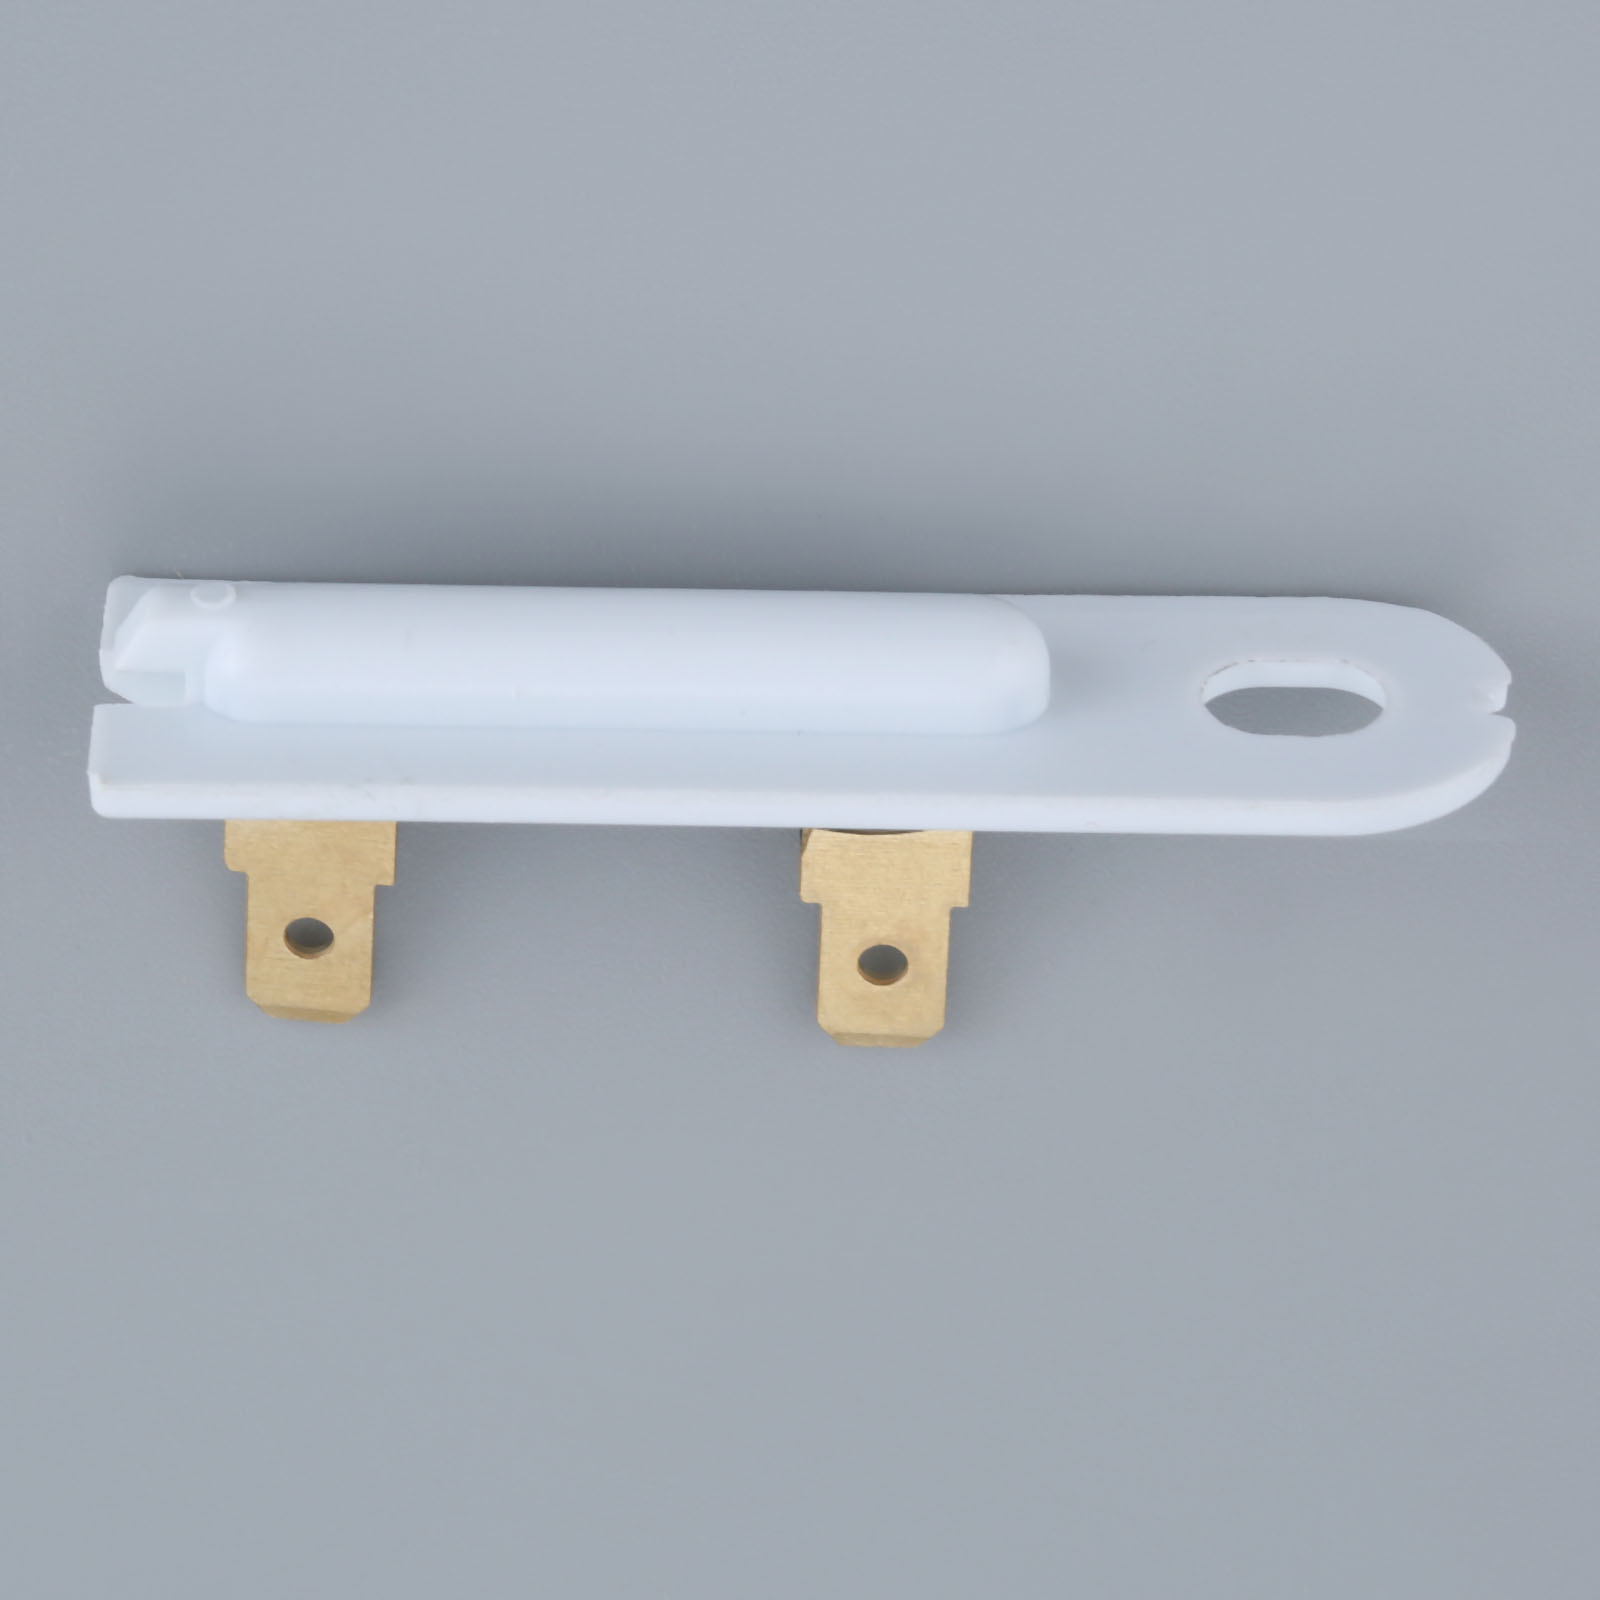 Dryer Thermal Blower Fuse 3392519 WP3392519 For Whirlpool Kenmore AP6008325 PS11741460 3388651